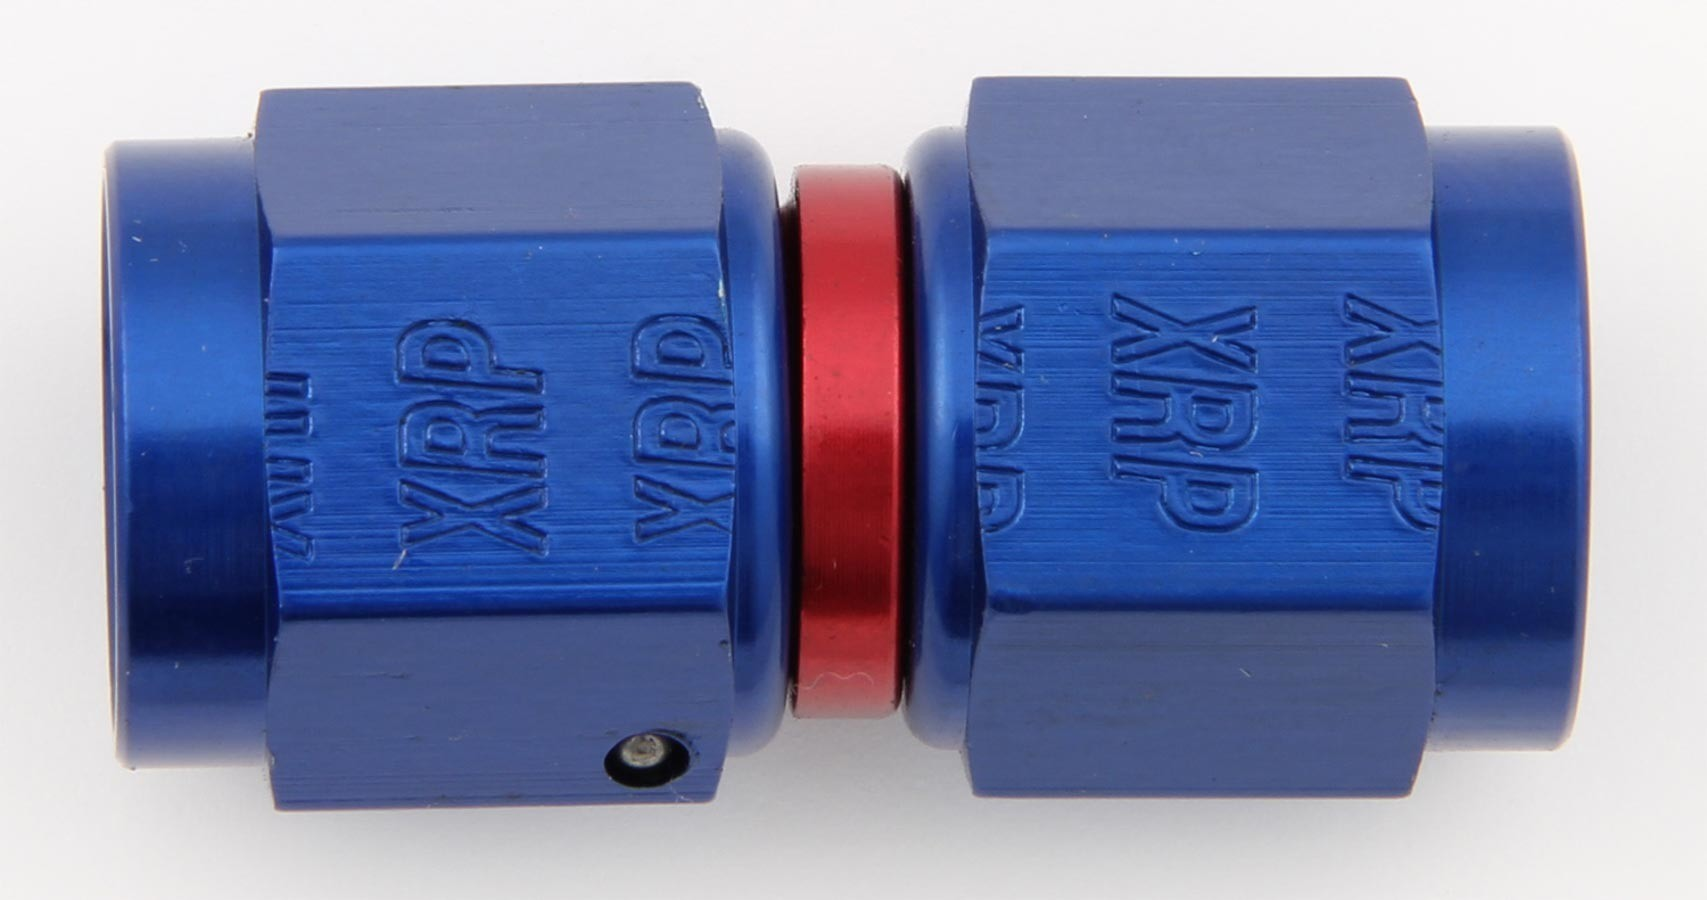 XRP 900106 Fitting, Adapter, Straight, 6 AN Female Swivel to 6 AN Female Swivel, Aluminum, Blue / Red Anodized, Each